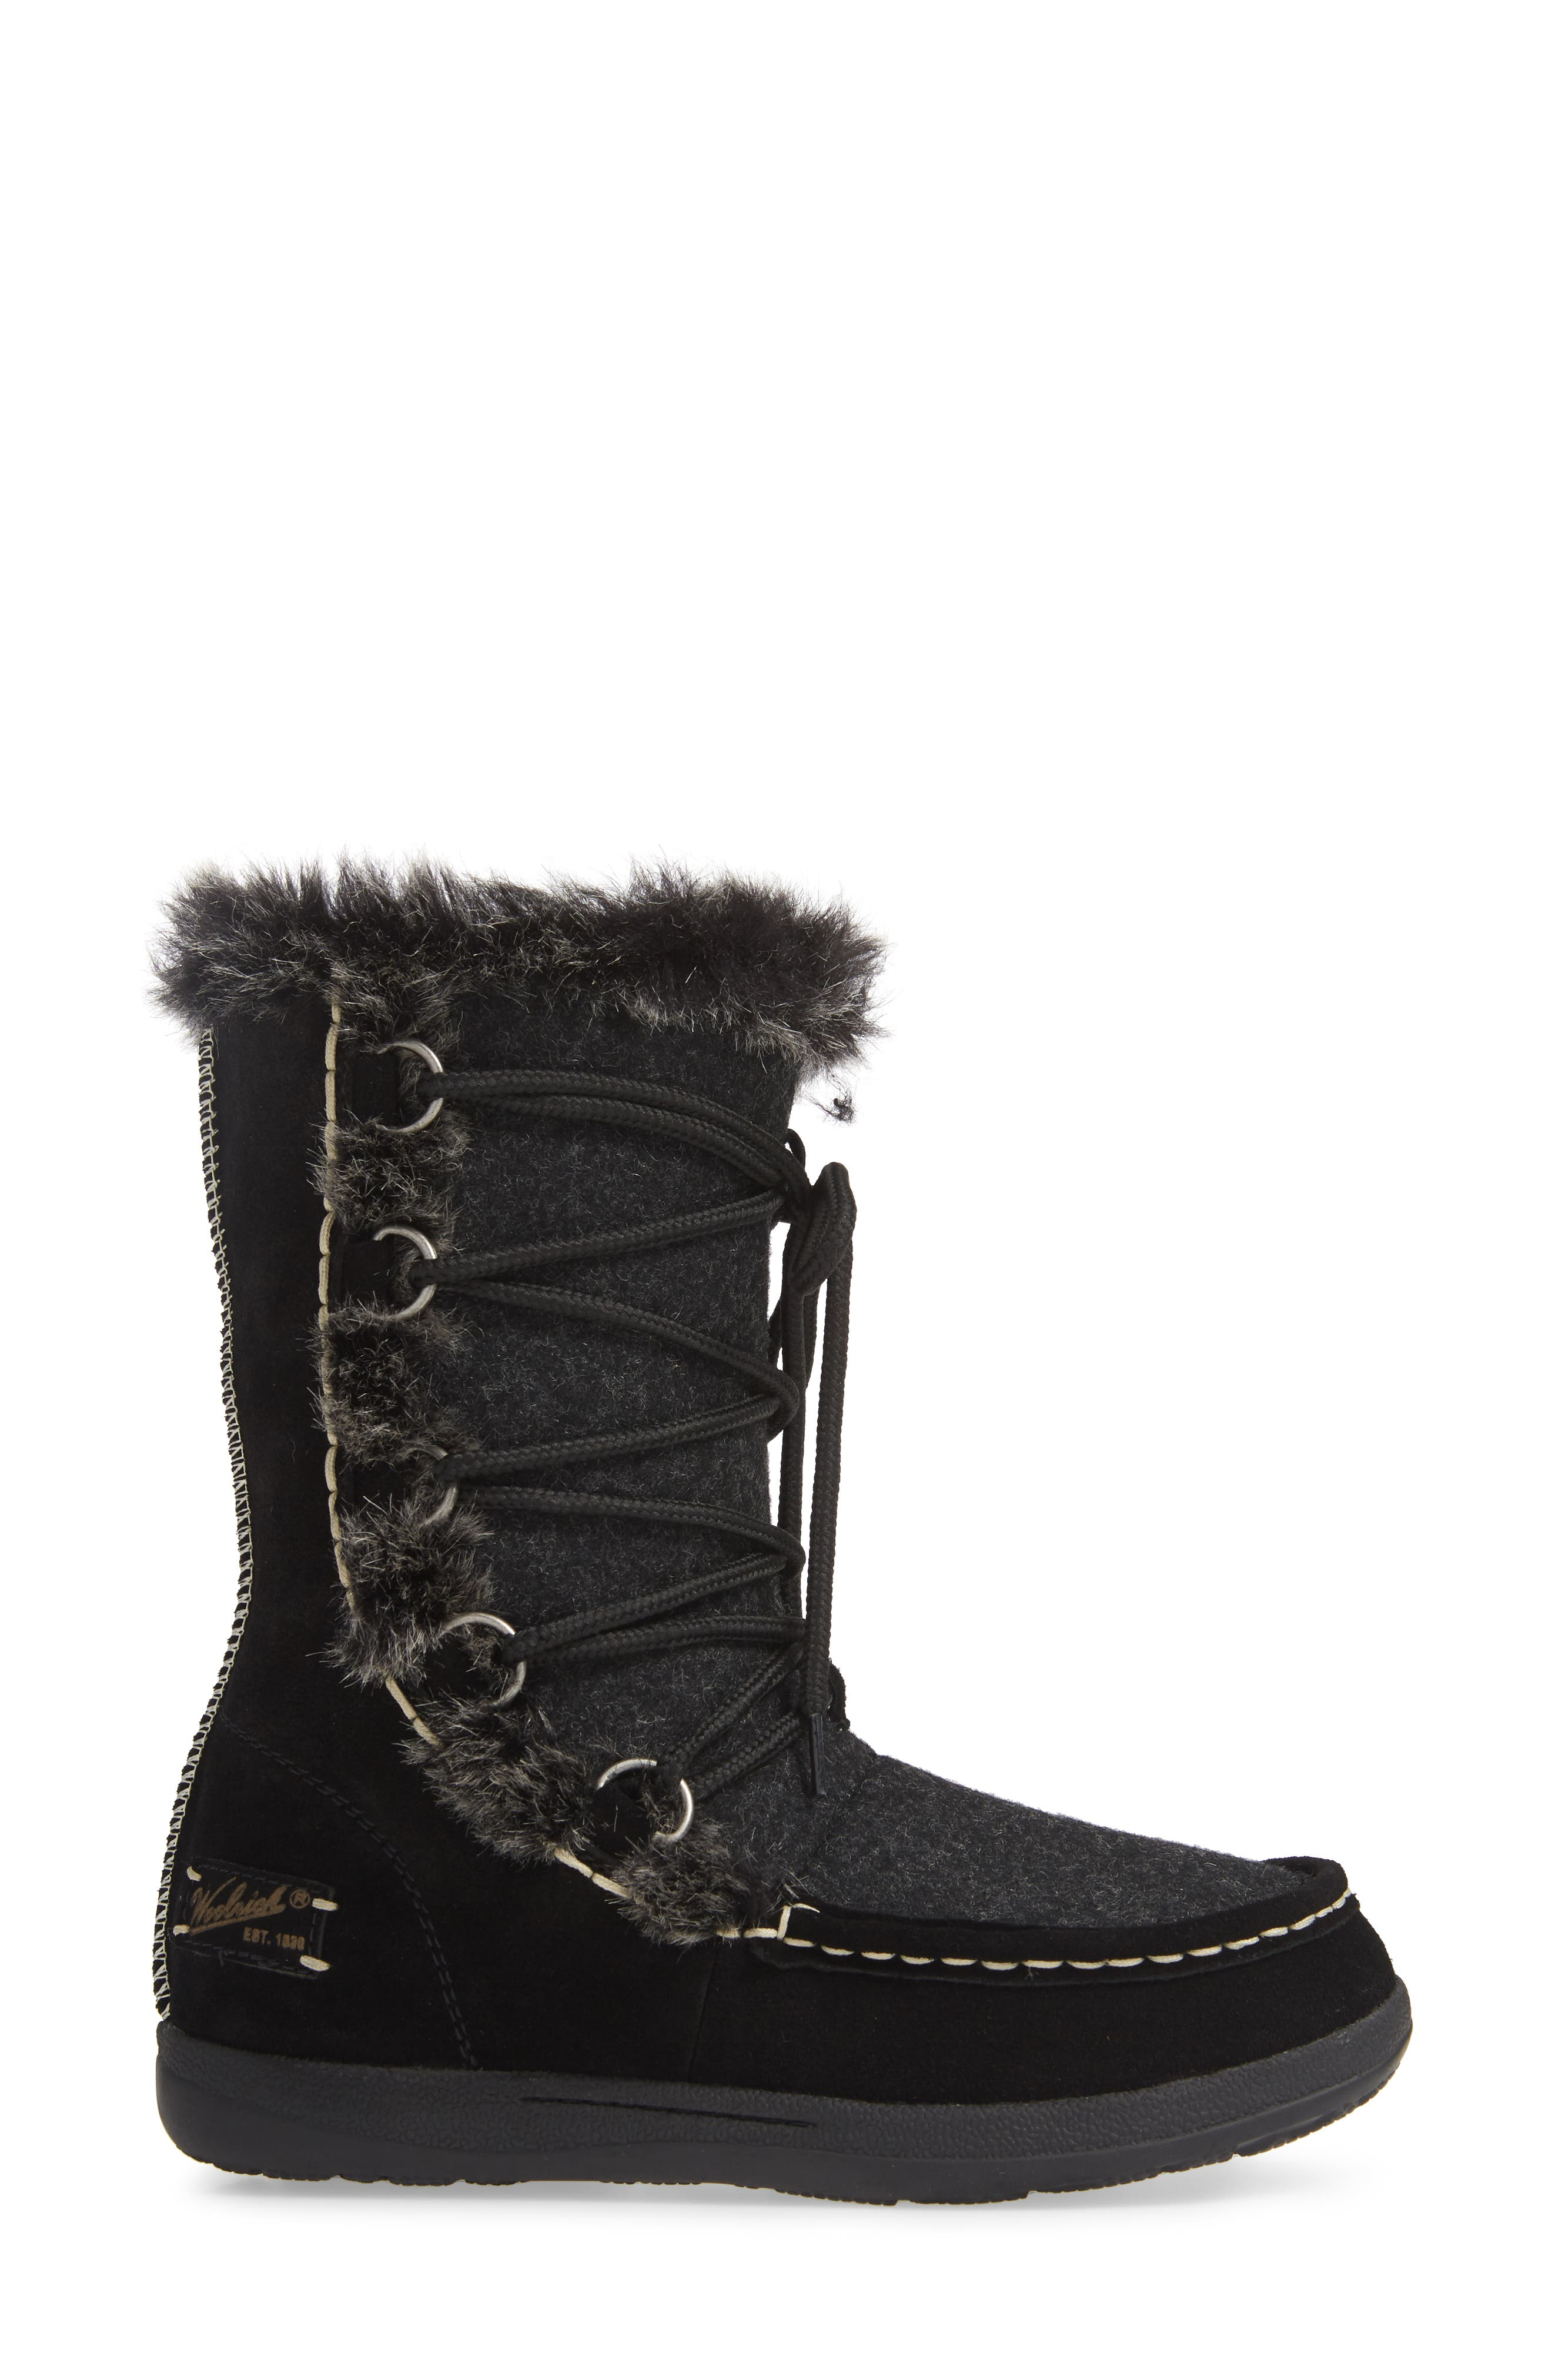 Lace Up Bootie,                             Alternate thumbnail 3, color,                             BLACK WOOL